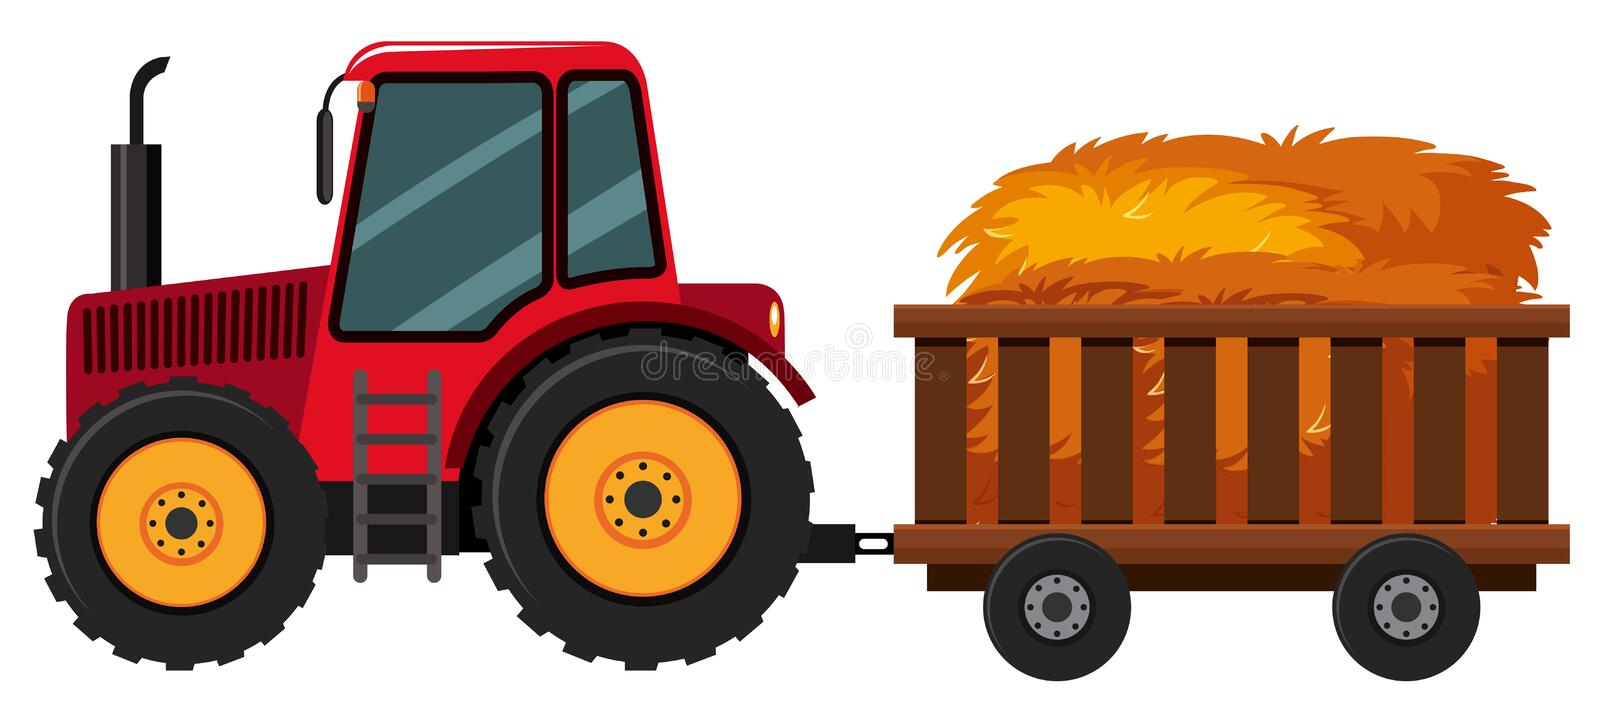 Tractor with hay in the cart. Illustration vector illustration